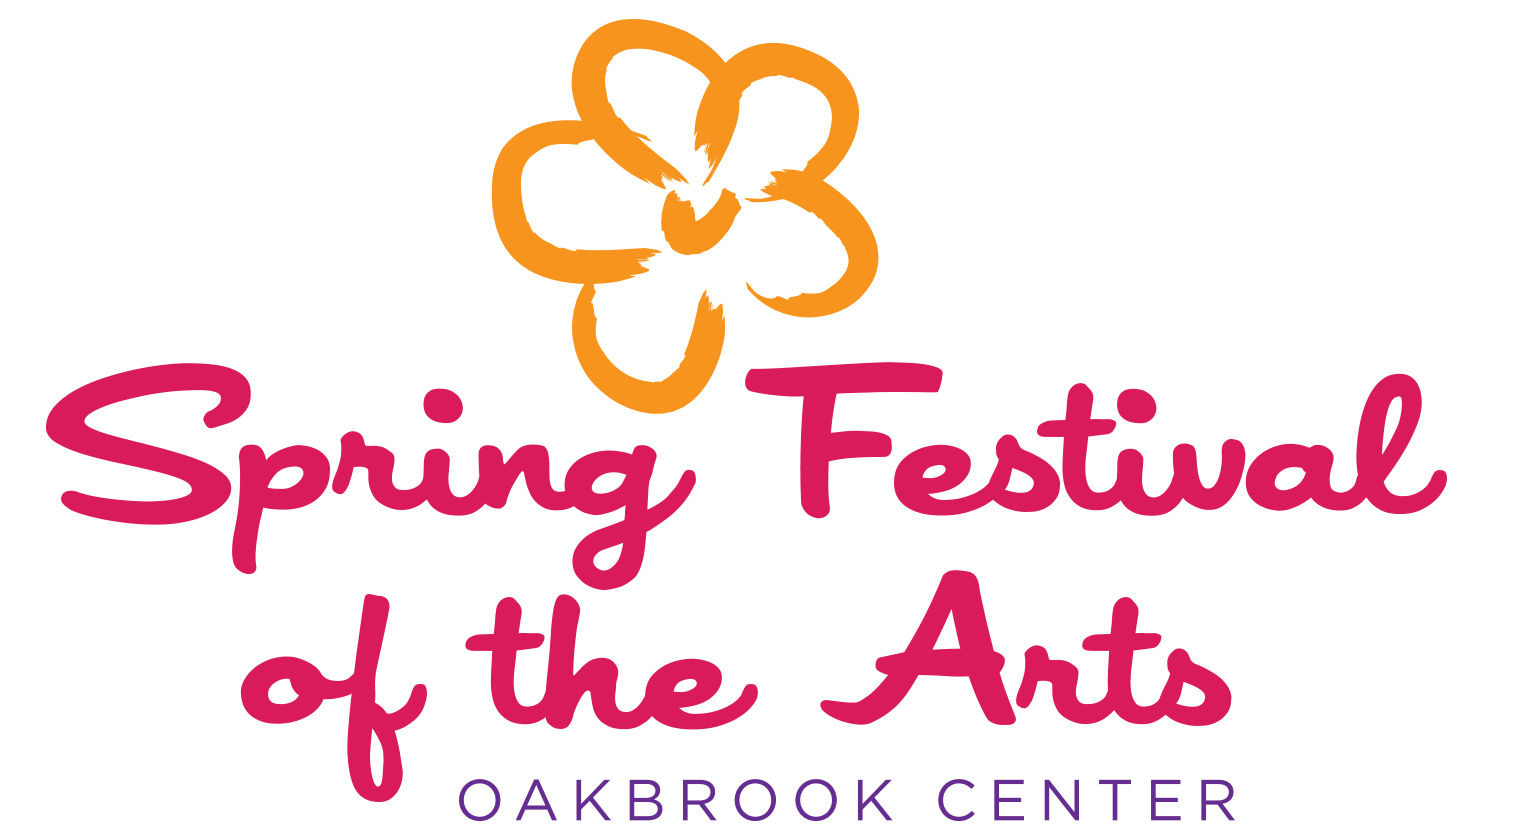 oak brook, oakbrook center festival,